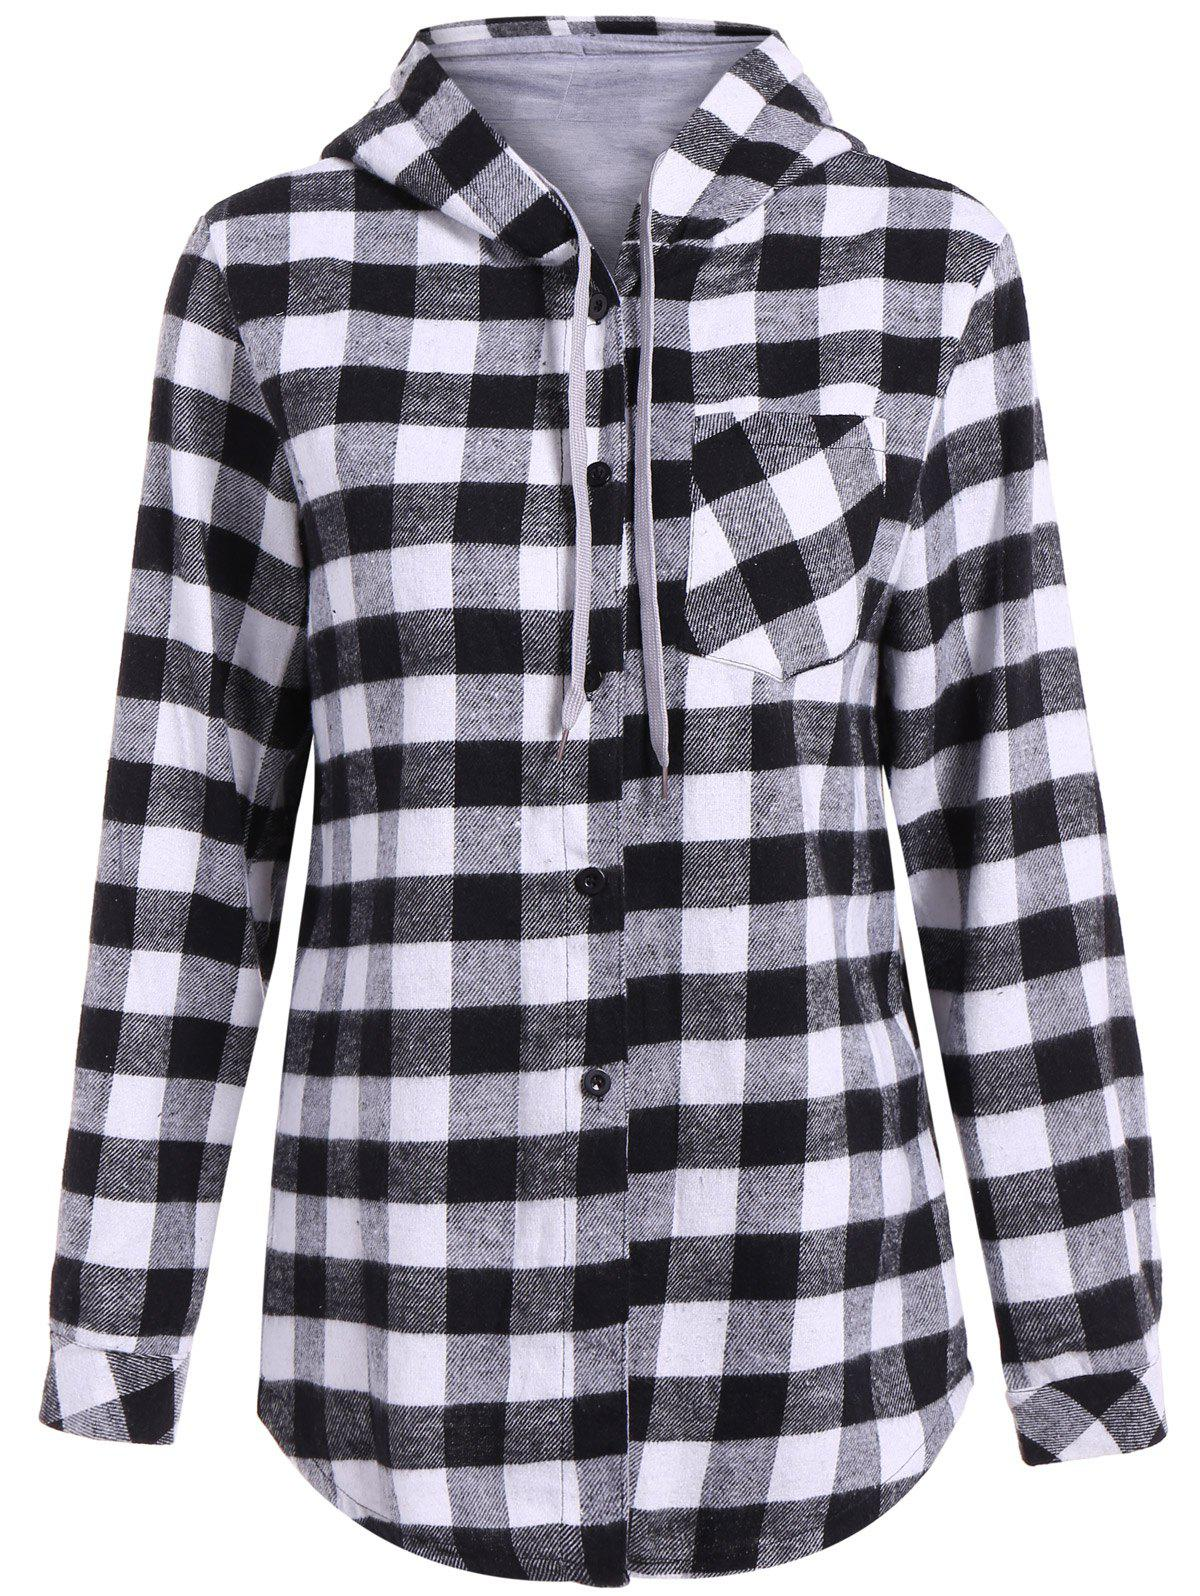 Casual Long Sleeve Hooded Plaid Check ShirtWOMEN<br><br>Size: L; Color: GRAY; Style: Casual; Material: Polyester; Shirt Length: Long; Sleeve Length: Full; Collar: Shirt Collar; Pattern Type: Plaid; Embellishment: Pockets; Season: Fall,Spring; Weight: 0.349kg; Package Contents: 1 x Dress;